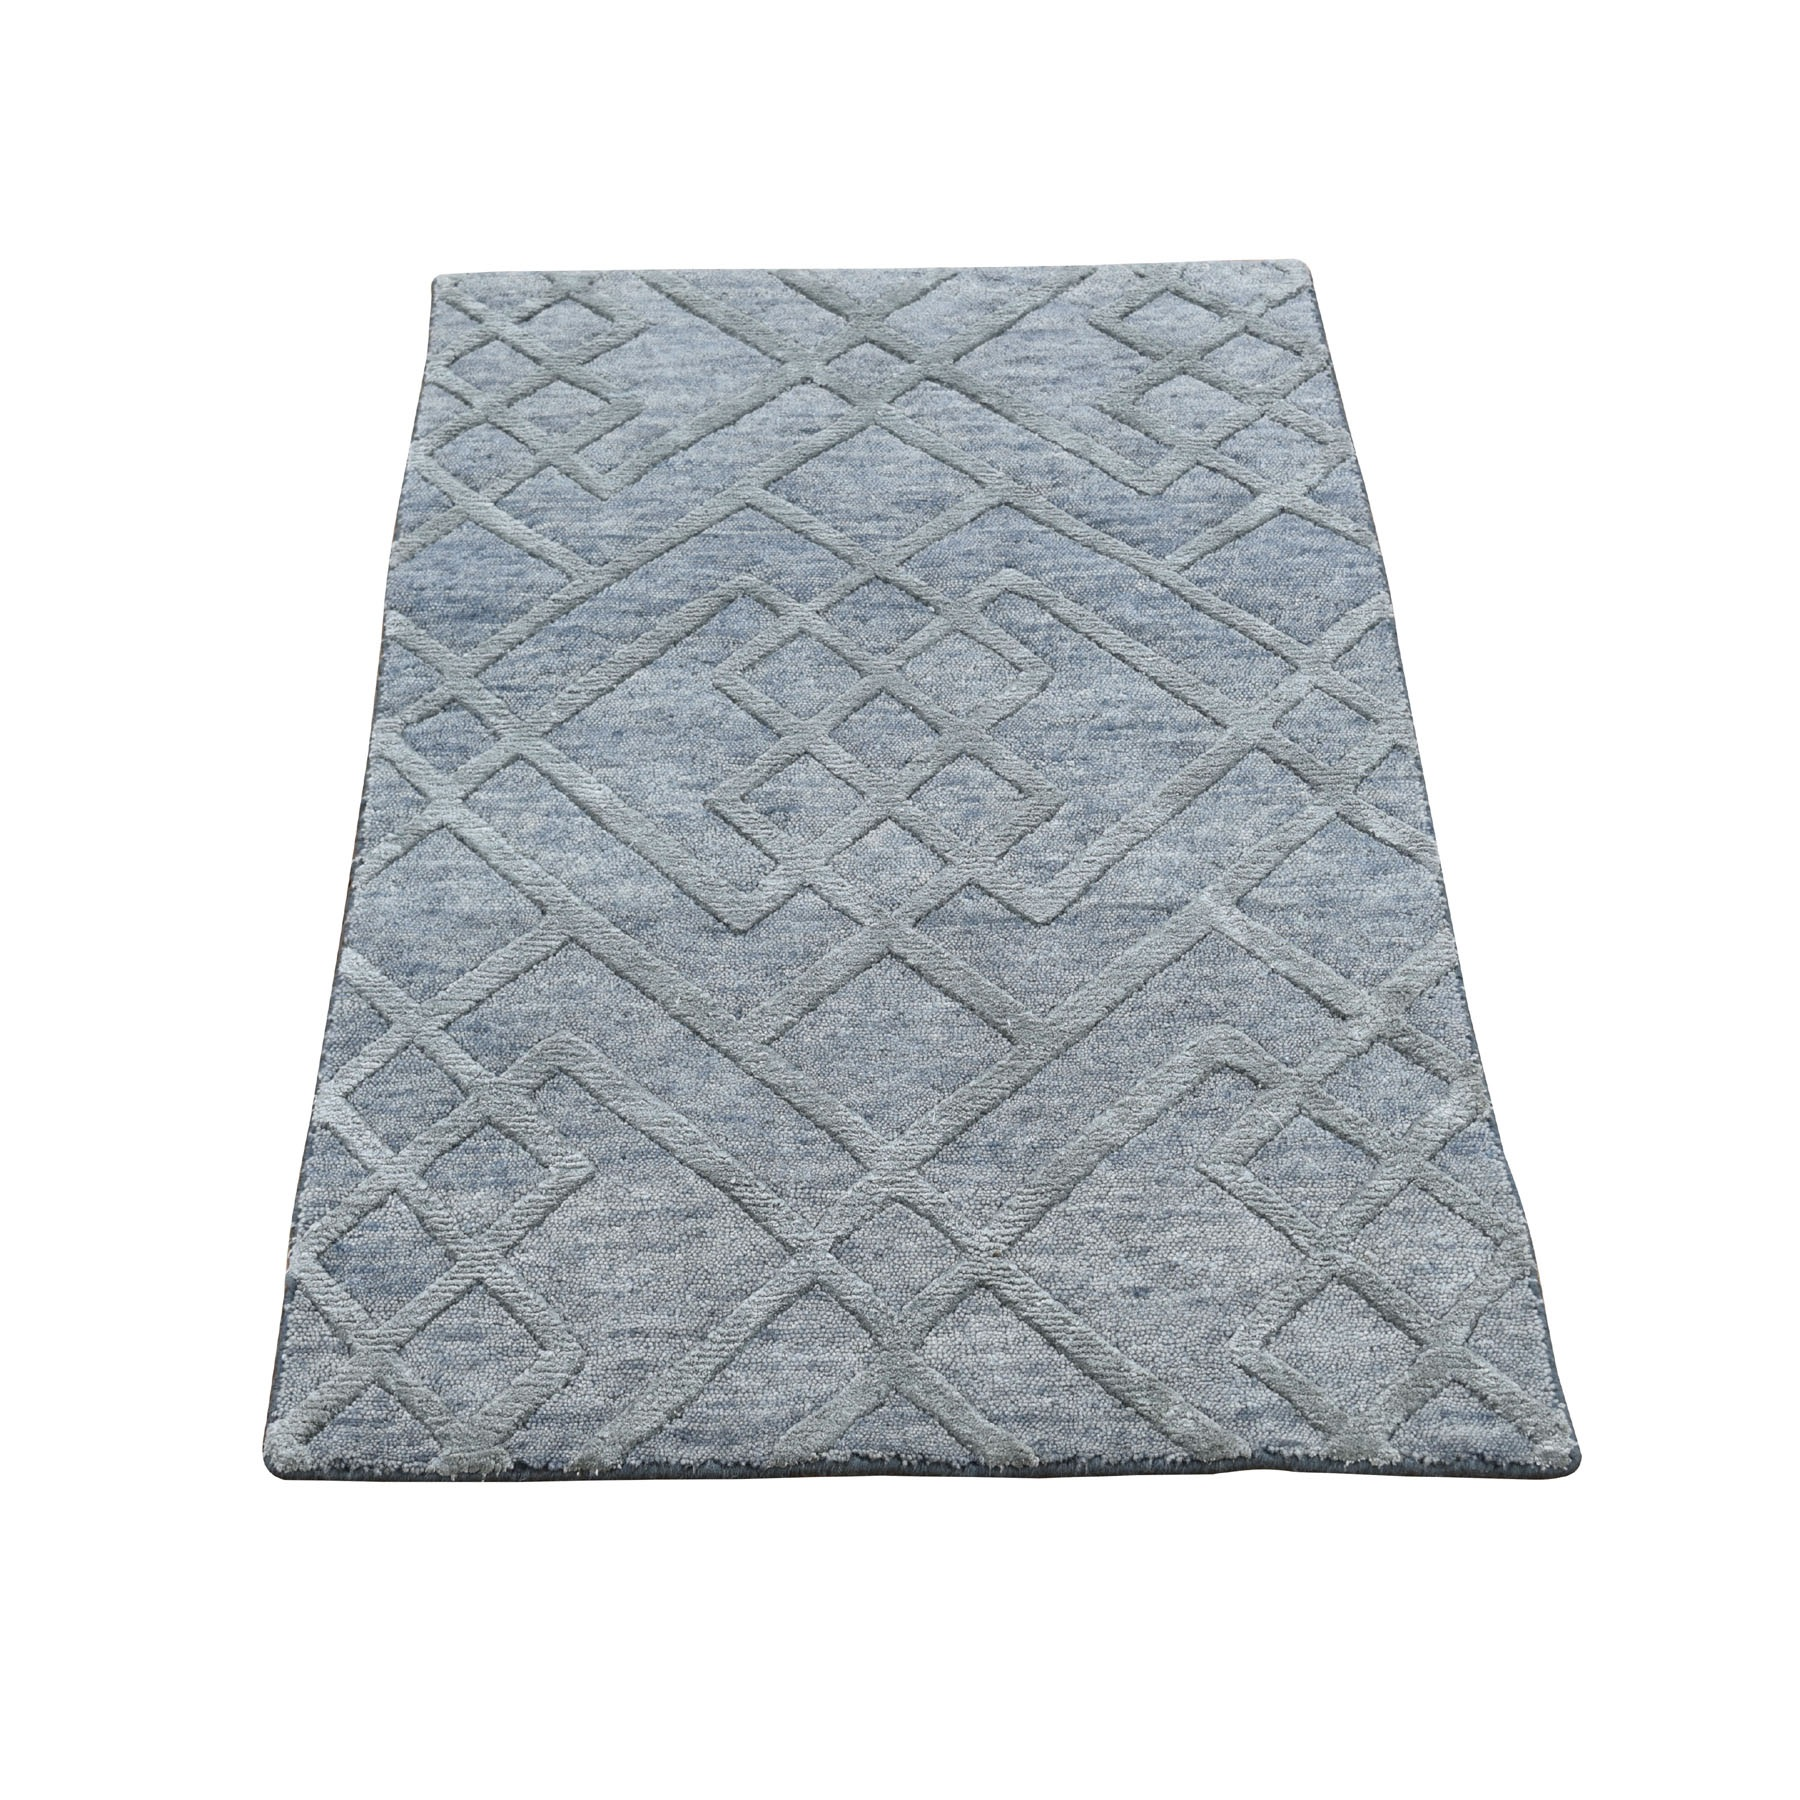 2'x3' Gray Wool And Silk Modern Hi Low Pile hand Knotted Oriental Rug 48117